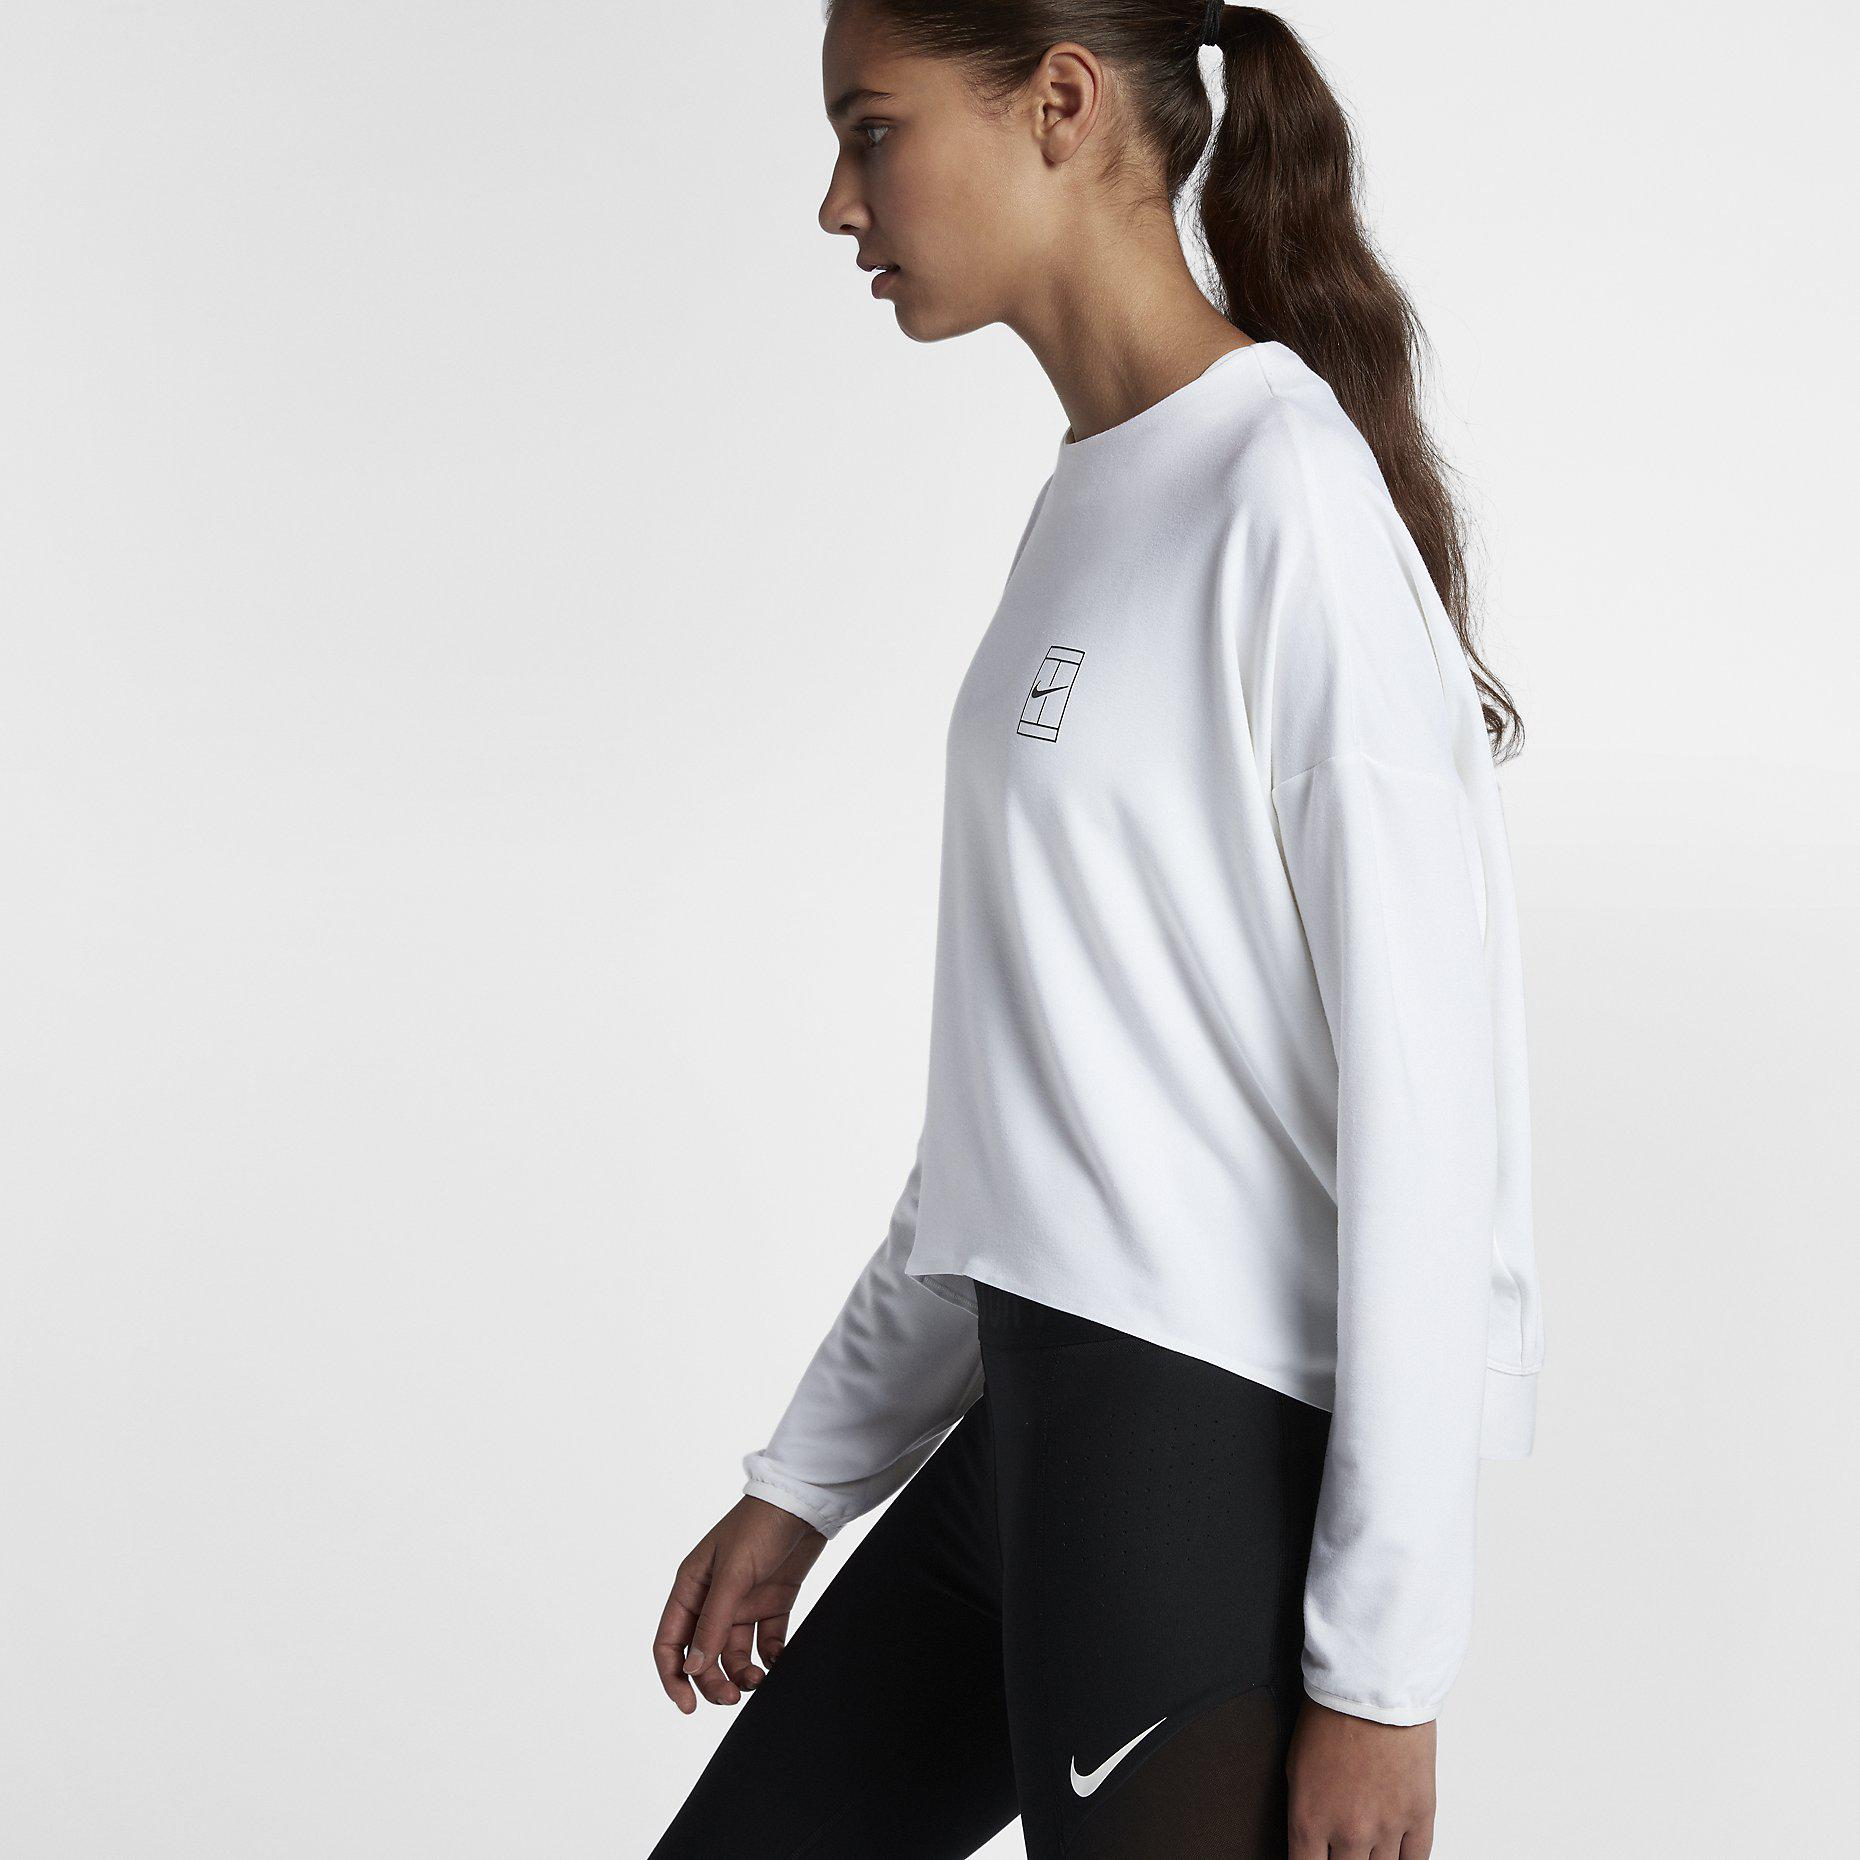 Nike Womens Dri-FIT Long Sleeve Tennis Top - White ...